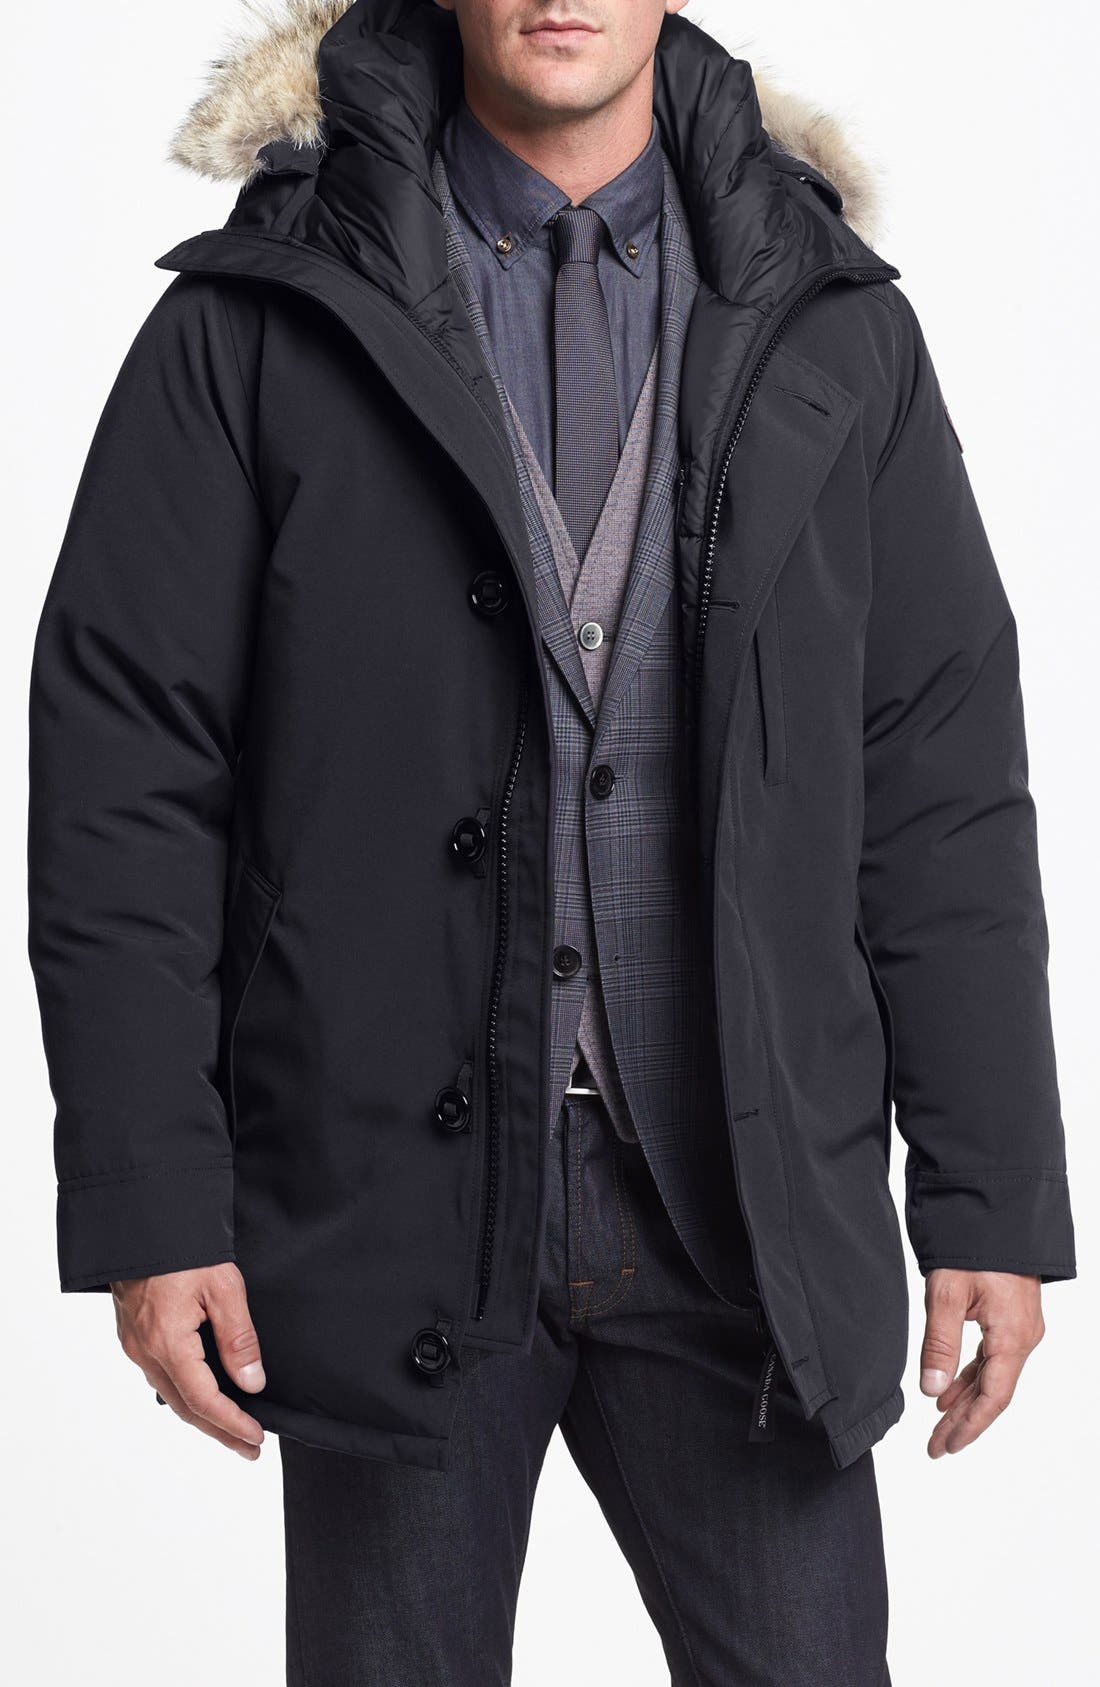 Men's Grey Coats & Men's Grey Jackets | Nordstrom